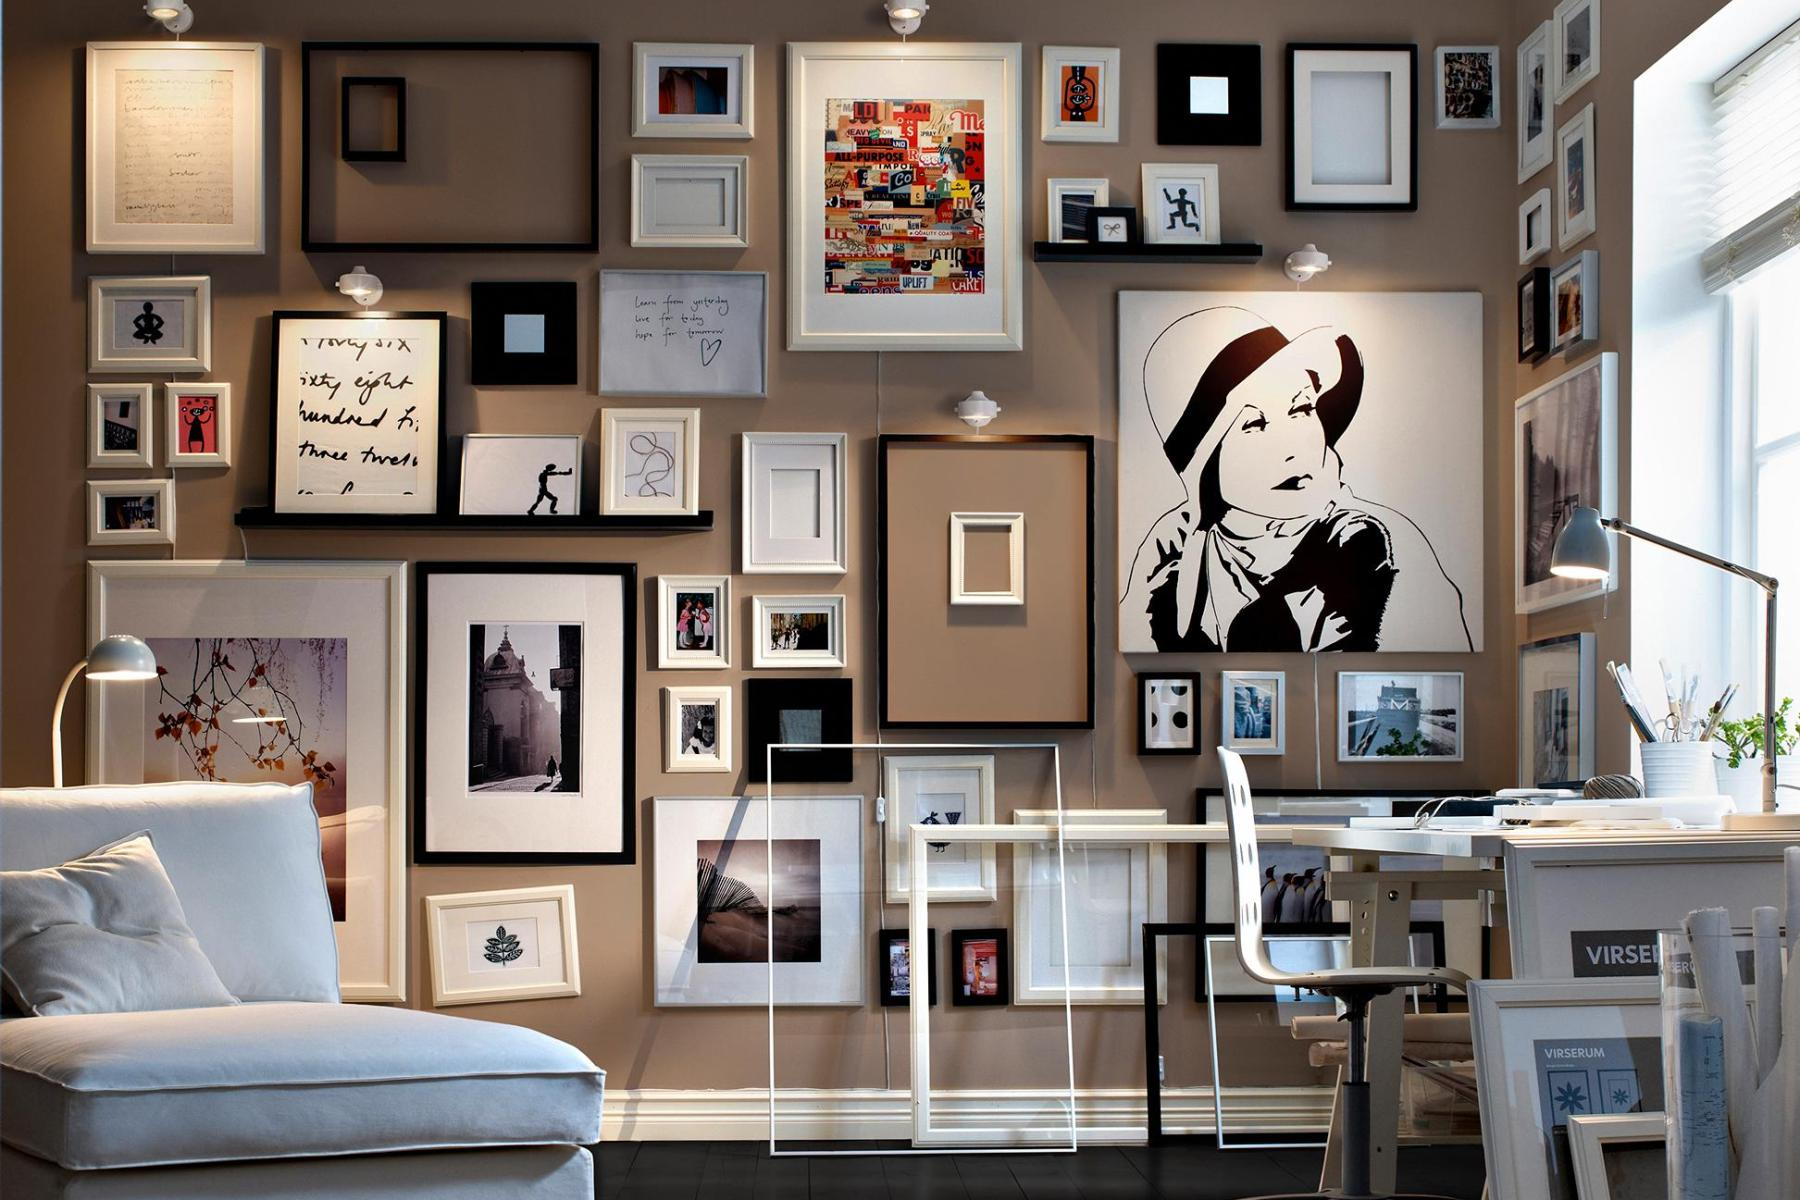 50% off Wall Art week of Jan 22, 2018 | New 2 You Upscale Retail Shop